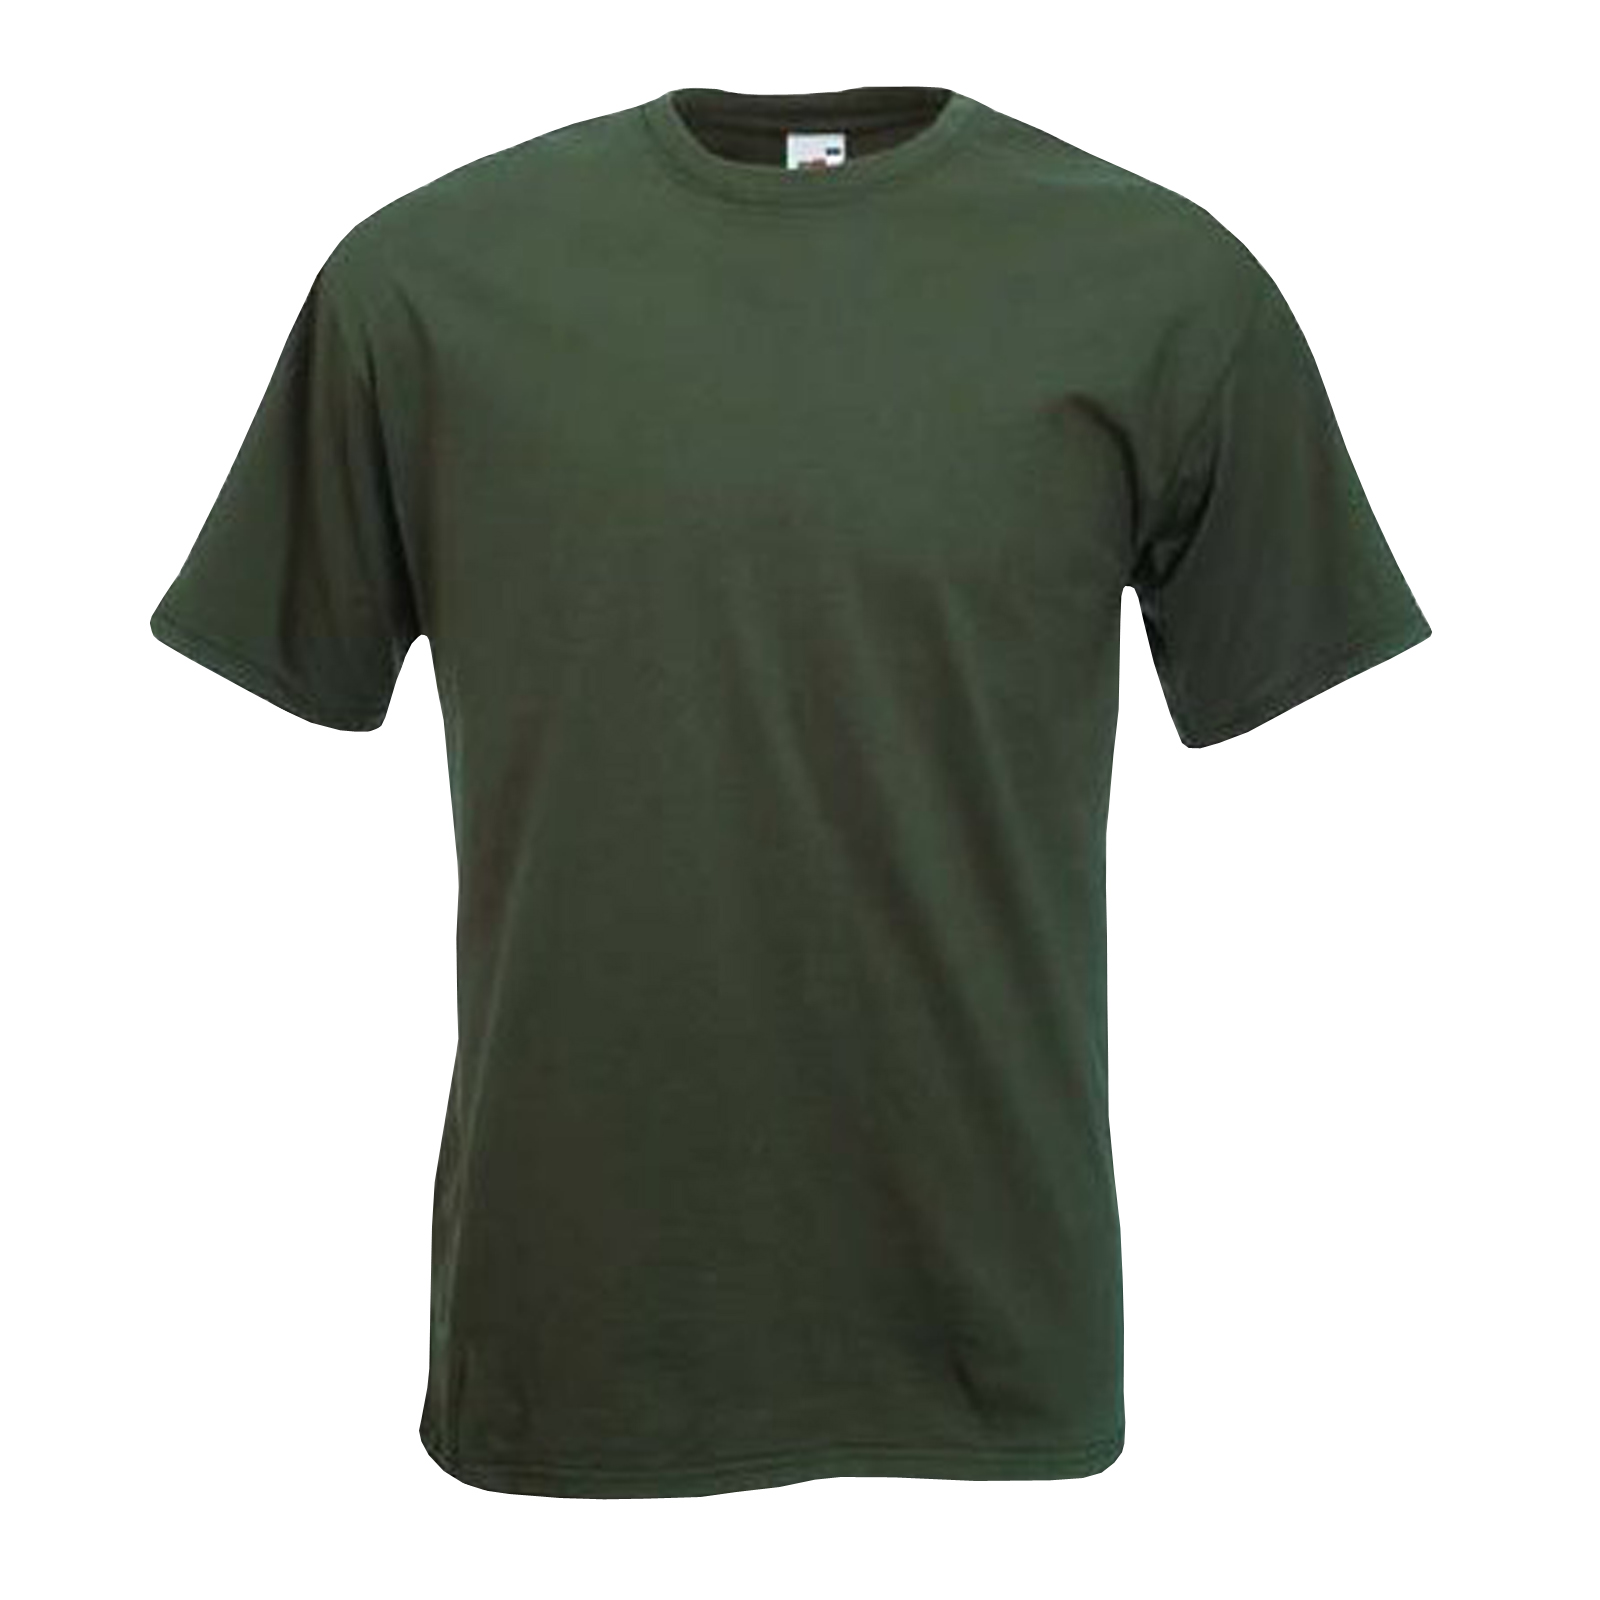 T Shirt Mens Fruit Of The Loom Cotton Tee Plain Blank